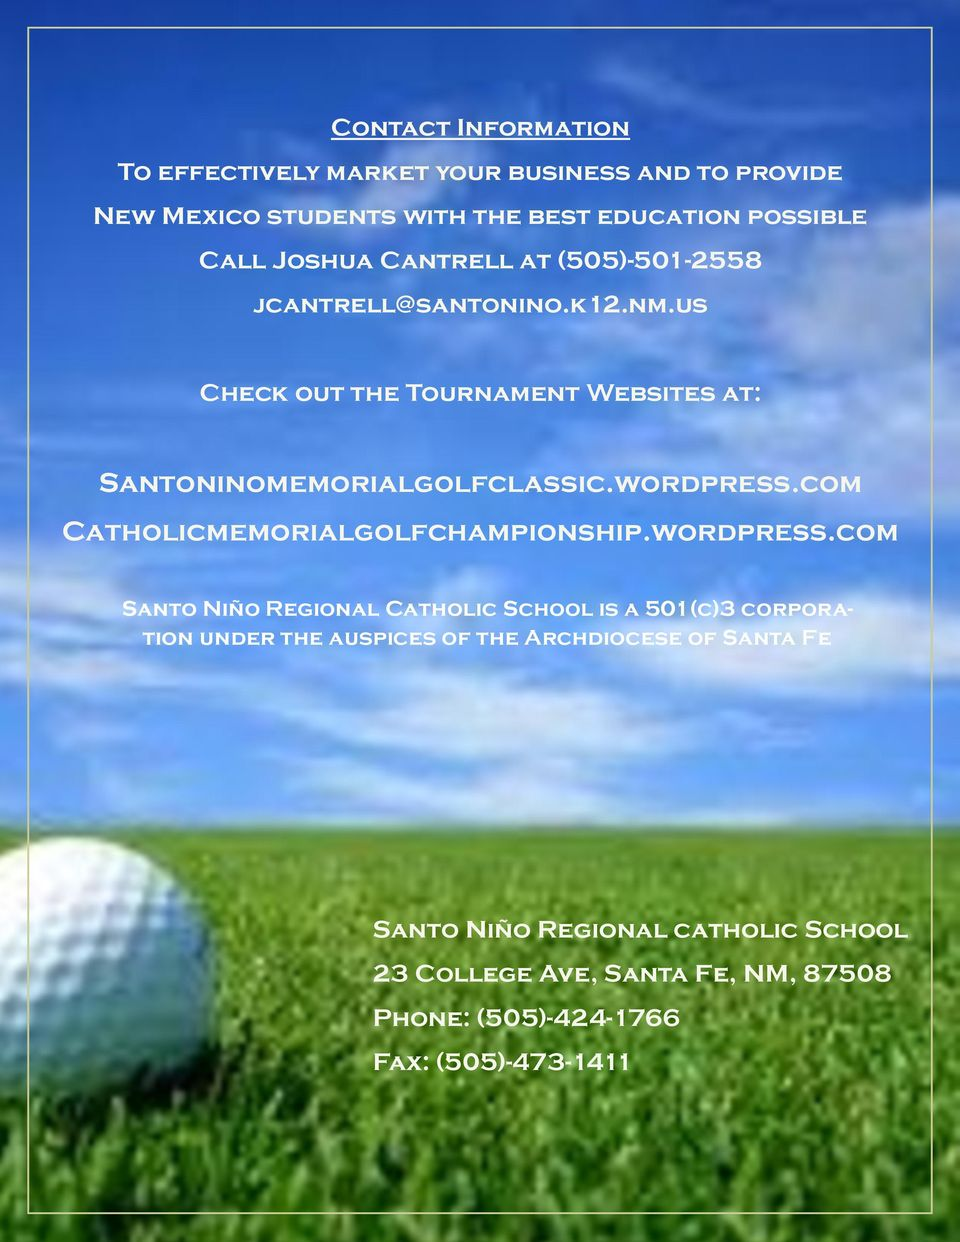 com Catholicmemorialgolfchampionship.wordpress.